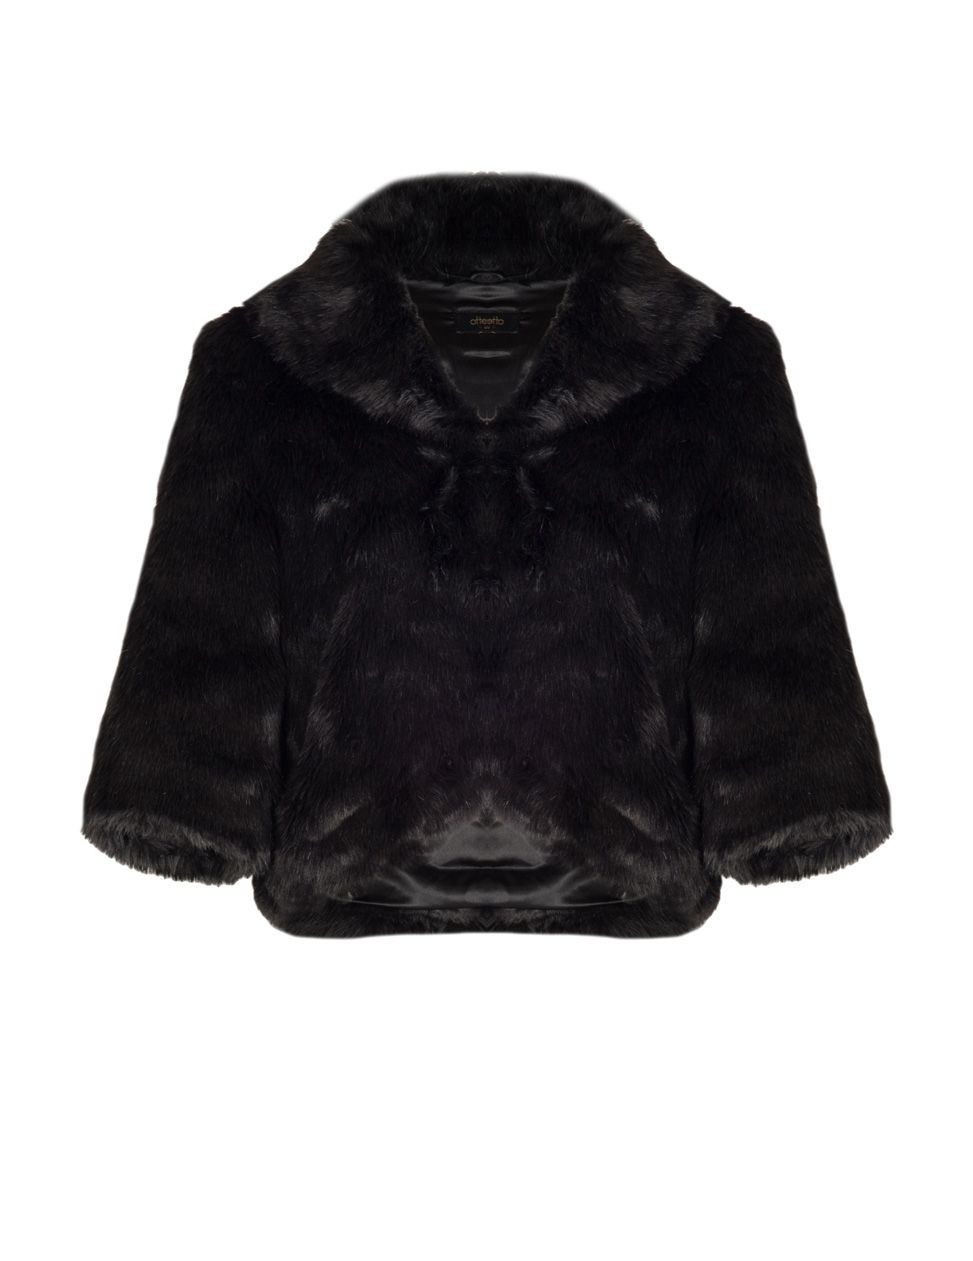 Elise soft faux fur jacket